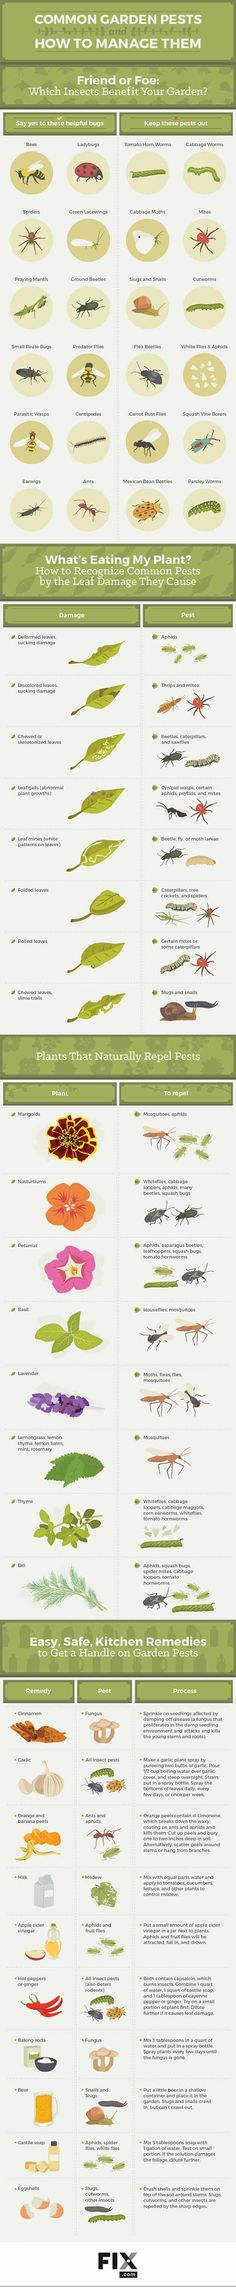 Garden Pests & How To Manage Them (Infographic)